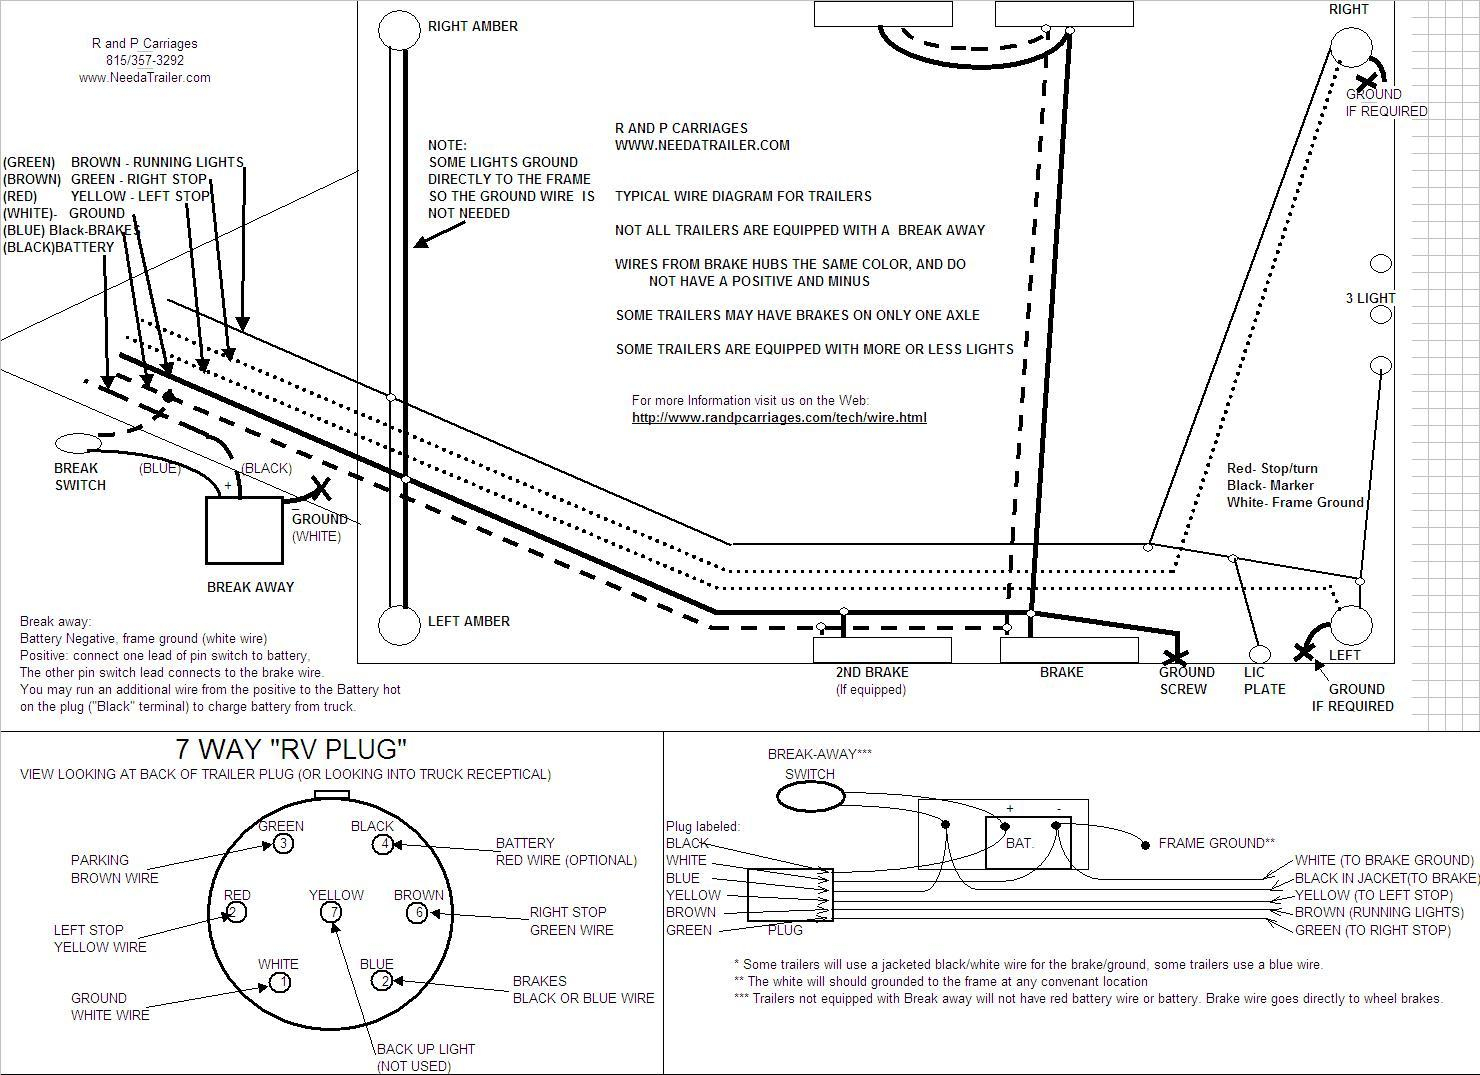 Standard 7 Wire 5Th Wheel Diagram | Wiring Library - 5Th Wheel Trailer Wiring Diagram